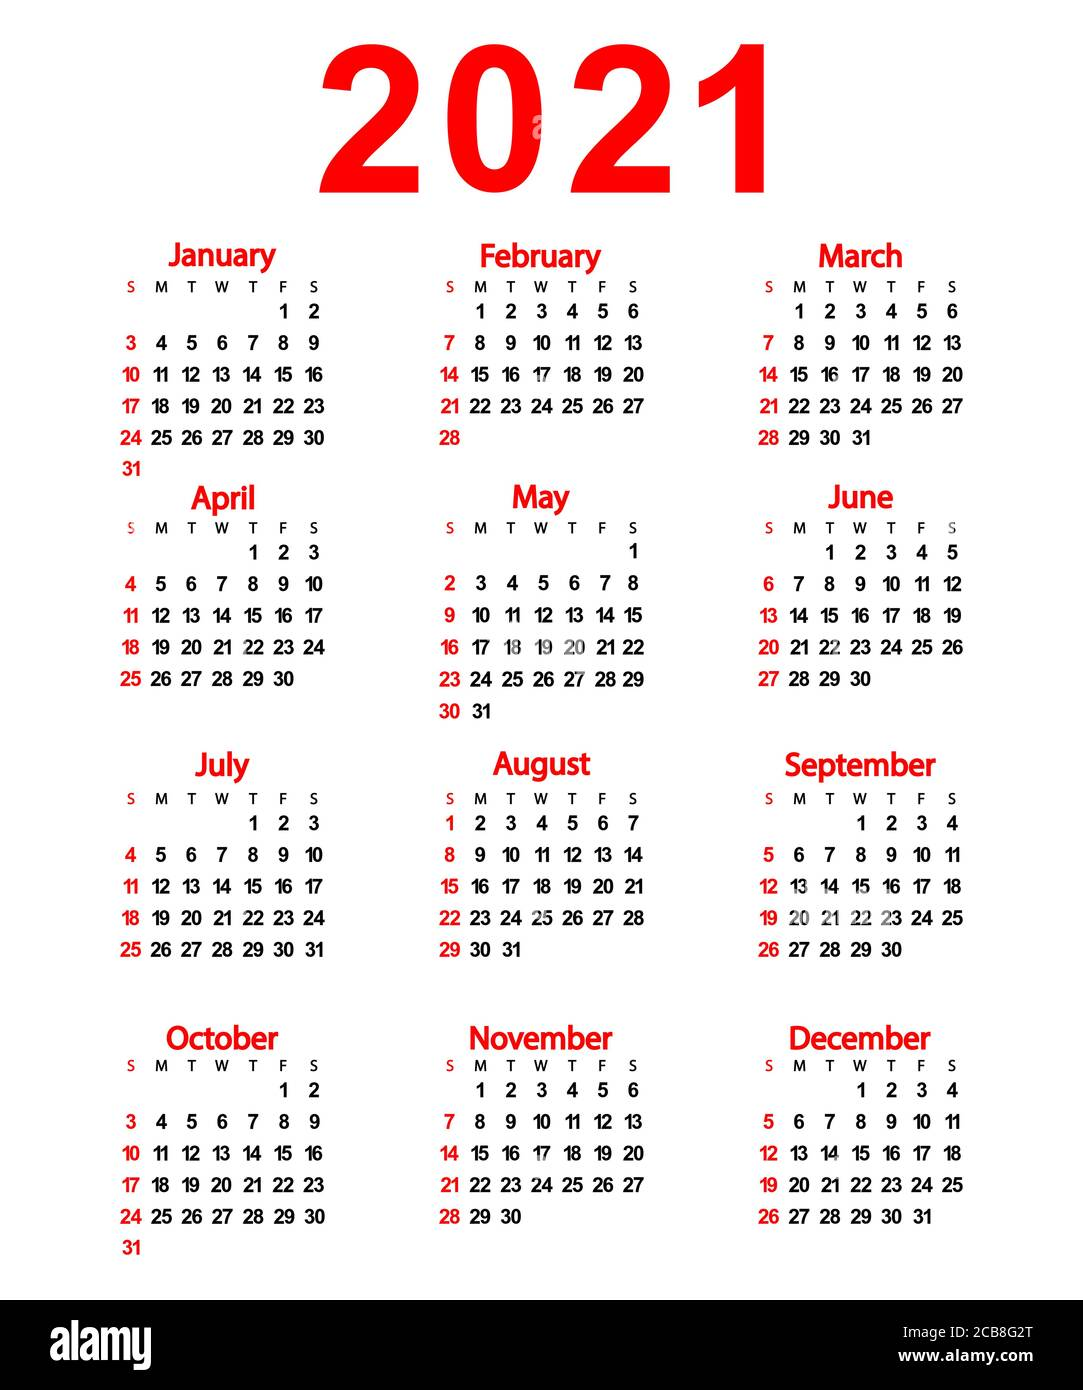 2021 Vector Calendar Calendar of the New Year 2021. Vector illustration for design